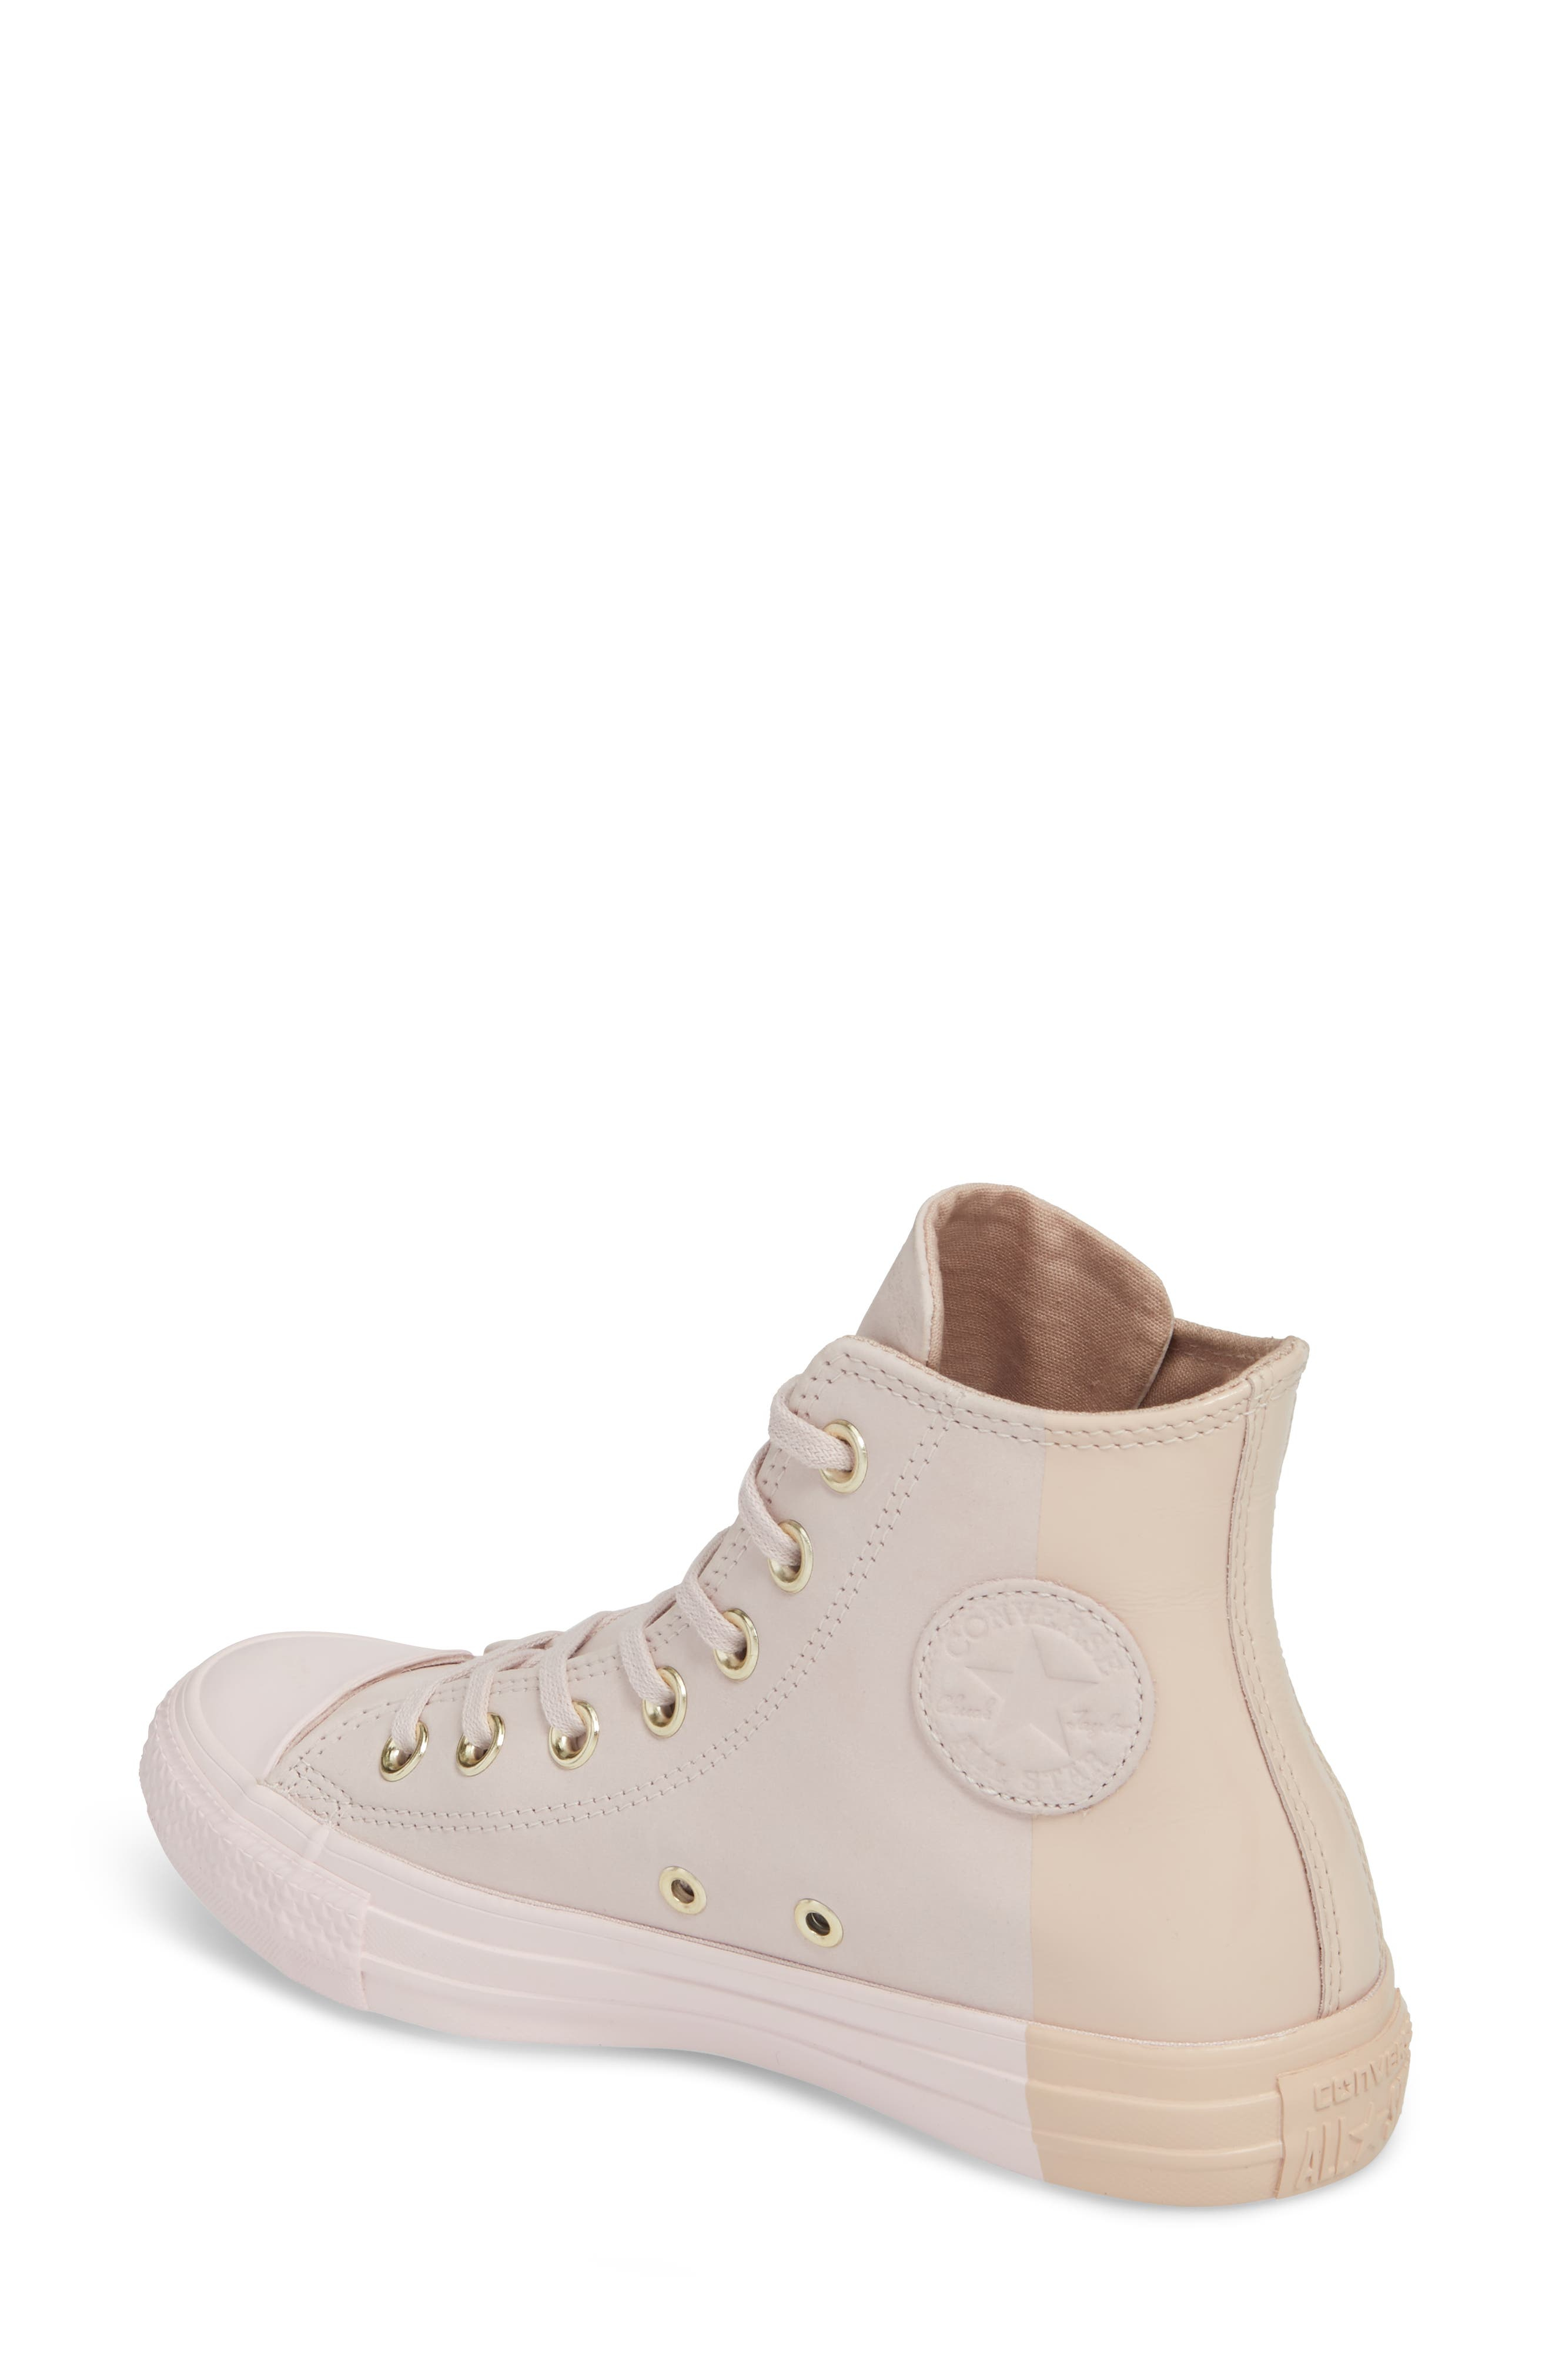 Chuck Taylor<sup>®</sup> All Star<sup>®</sup> Blocked High Top Sneaker,                             Alternate thumbnail 2, color,                             Barely Rose